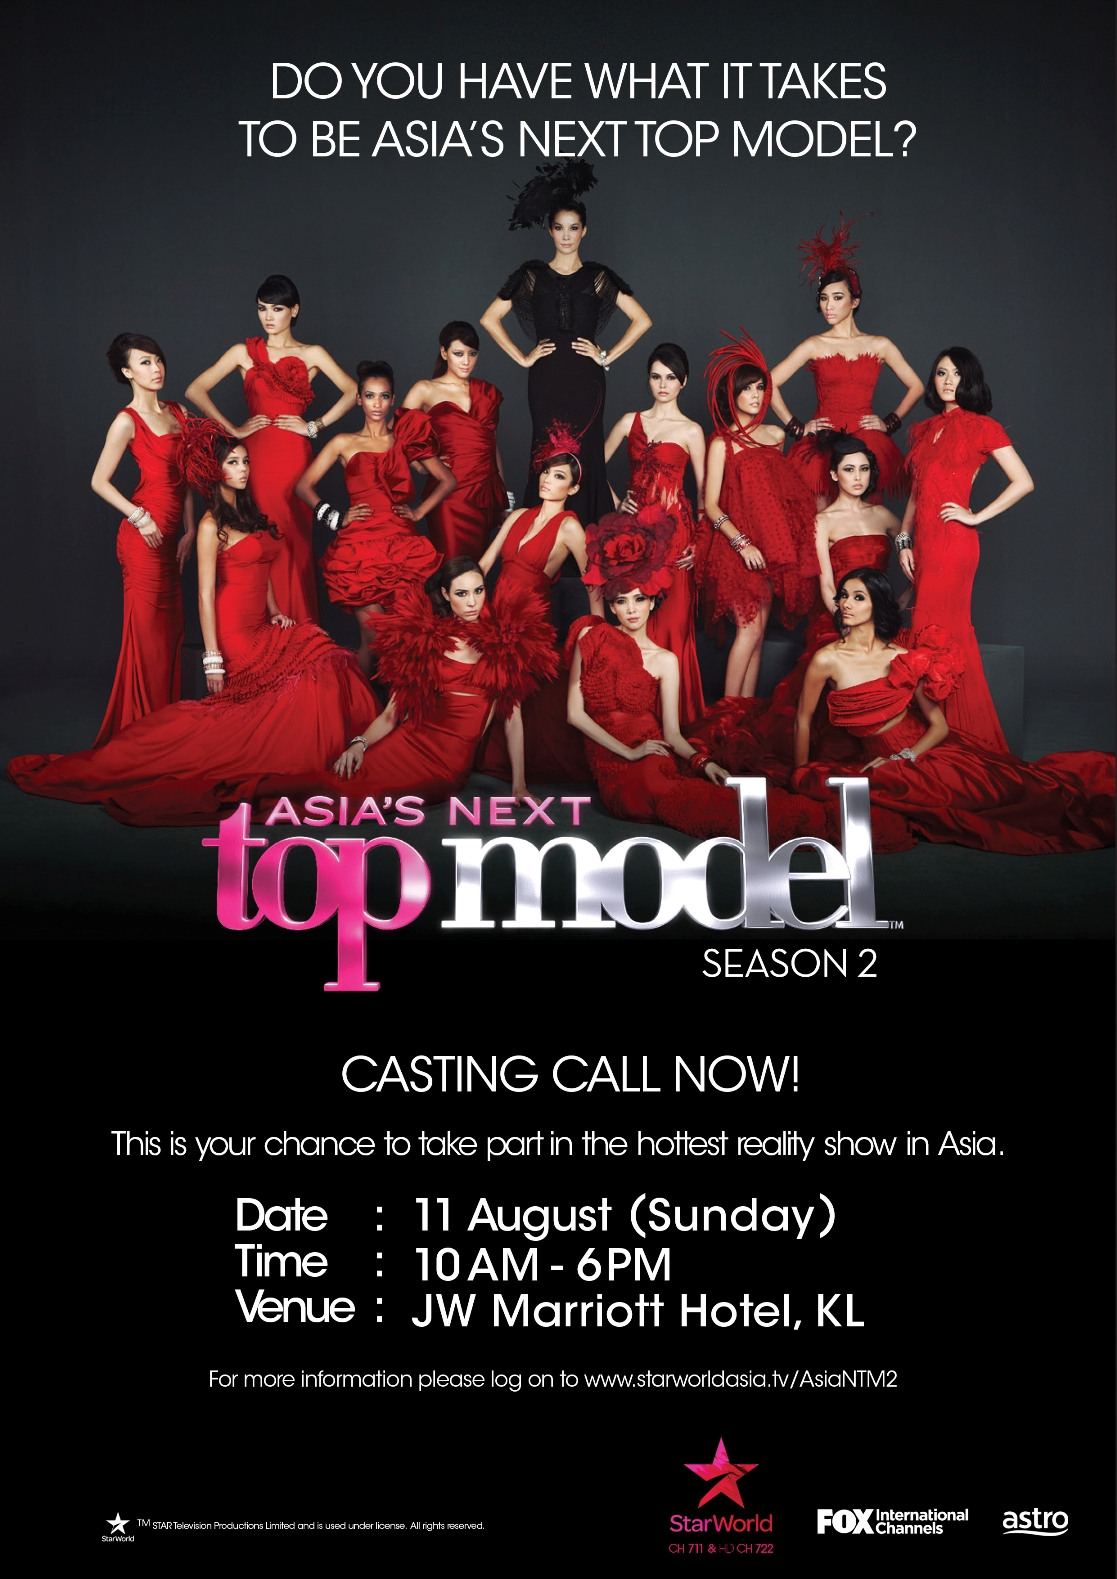 Dating show casting calls 2013